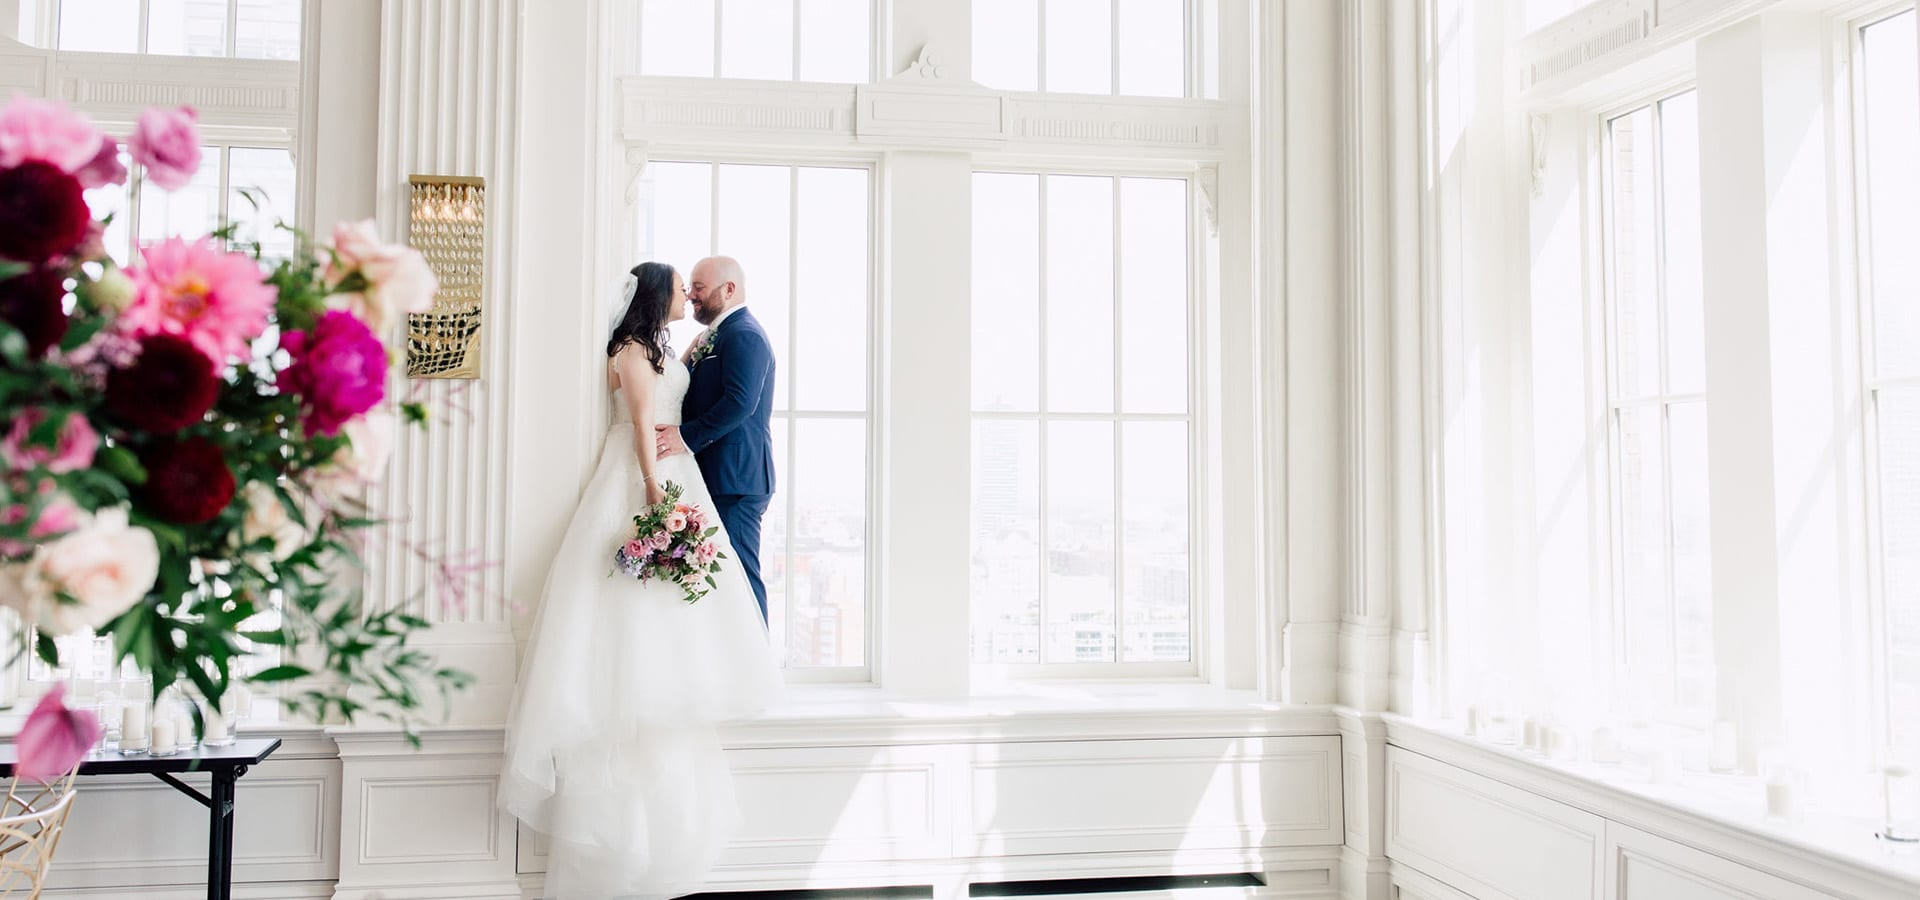 Hero image for Alessandra and Michael's Luxurious Nuptials at the King Edward Hotel